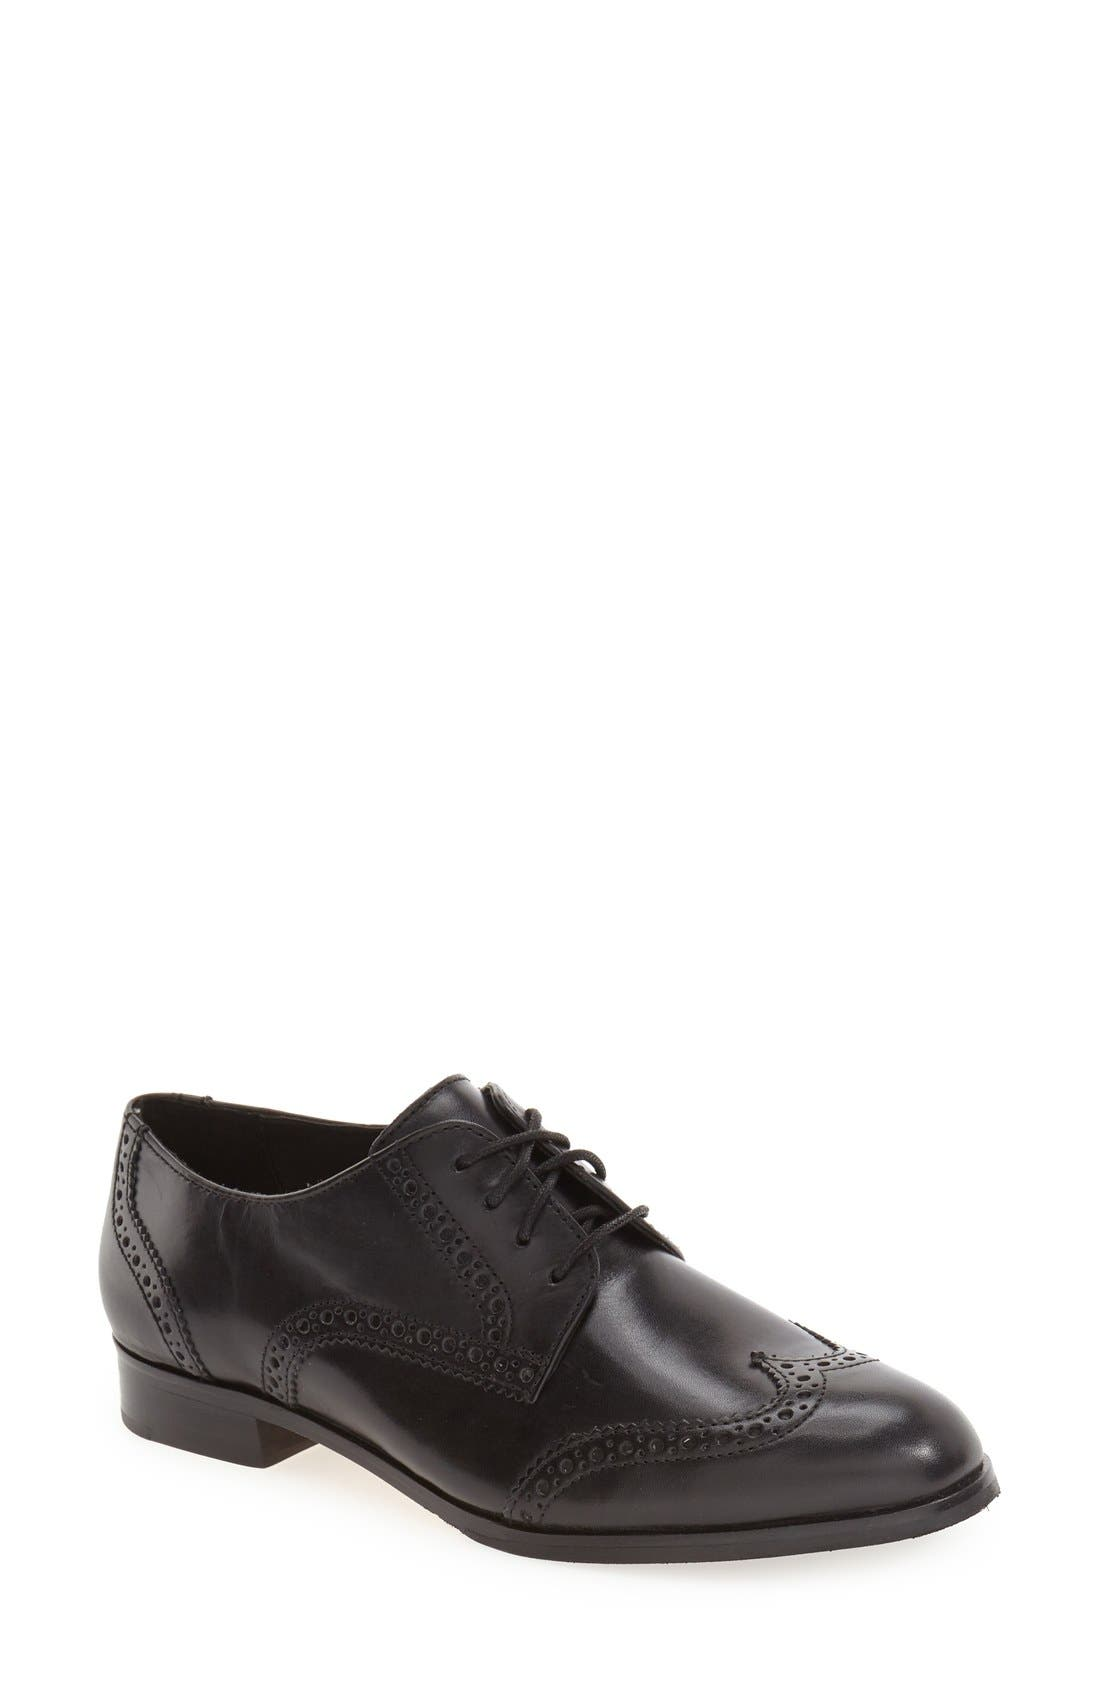 COLE HAAN Grand.OS Oxford, Main, color, 001